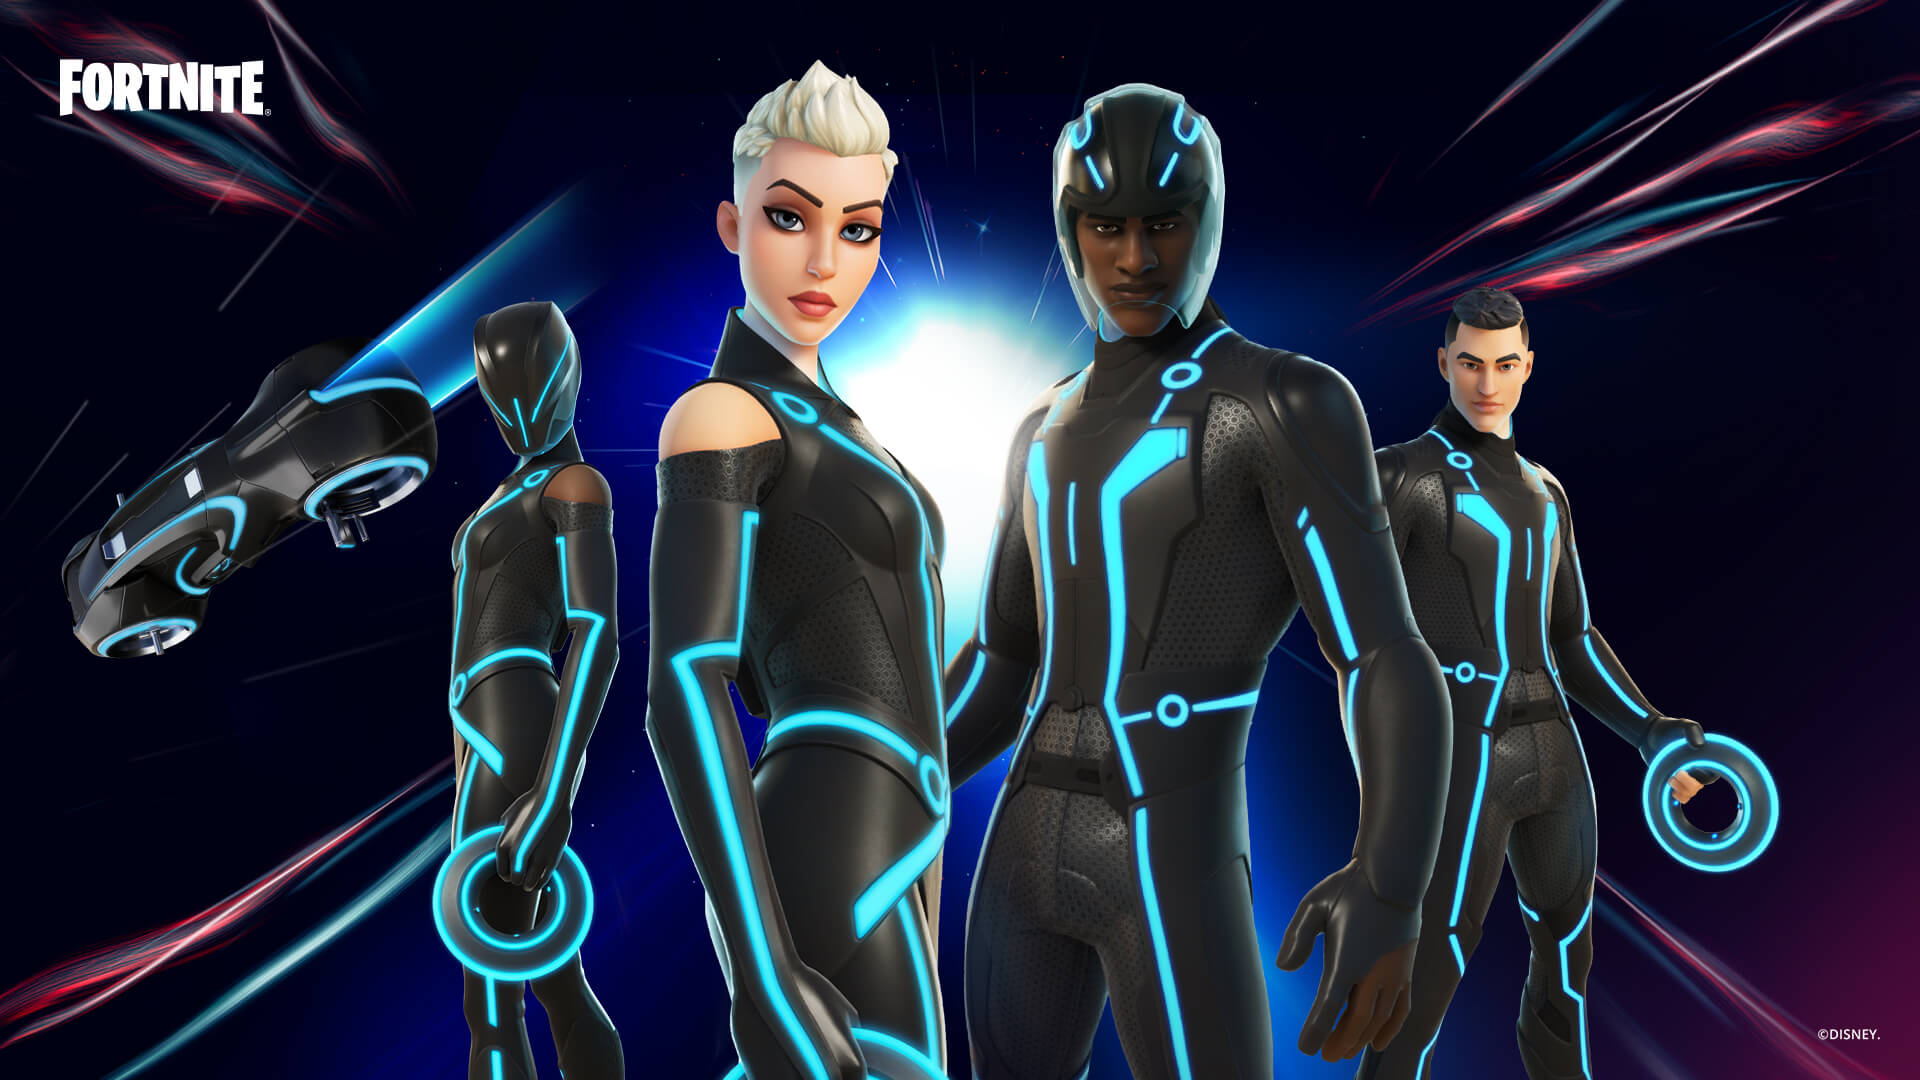 Are Hockey Skins Coming To Fortnite New Fortnite Shop Update Adds Tron Skins And More